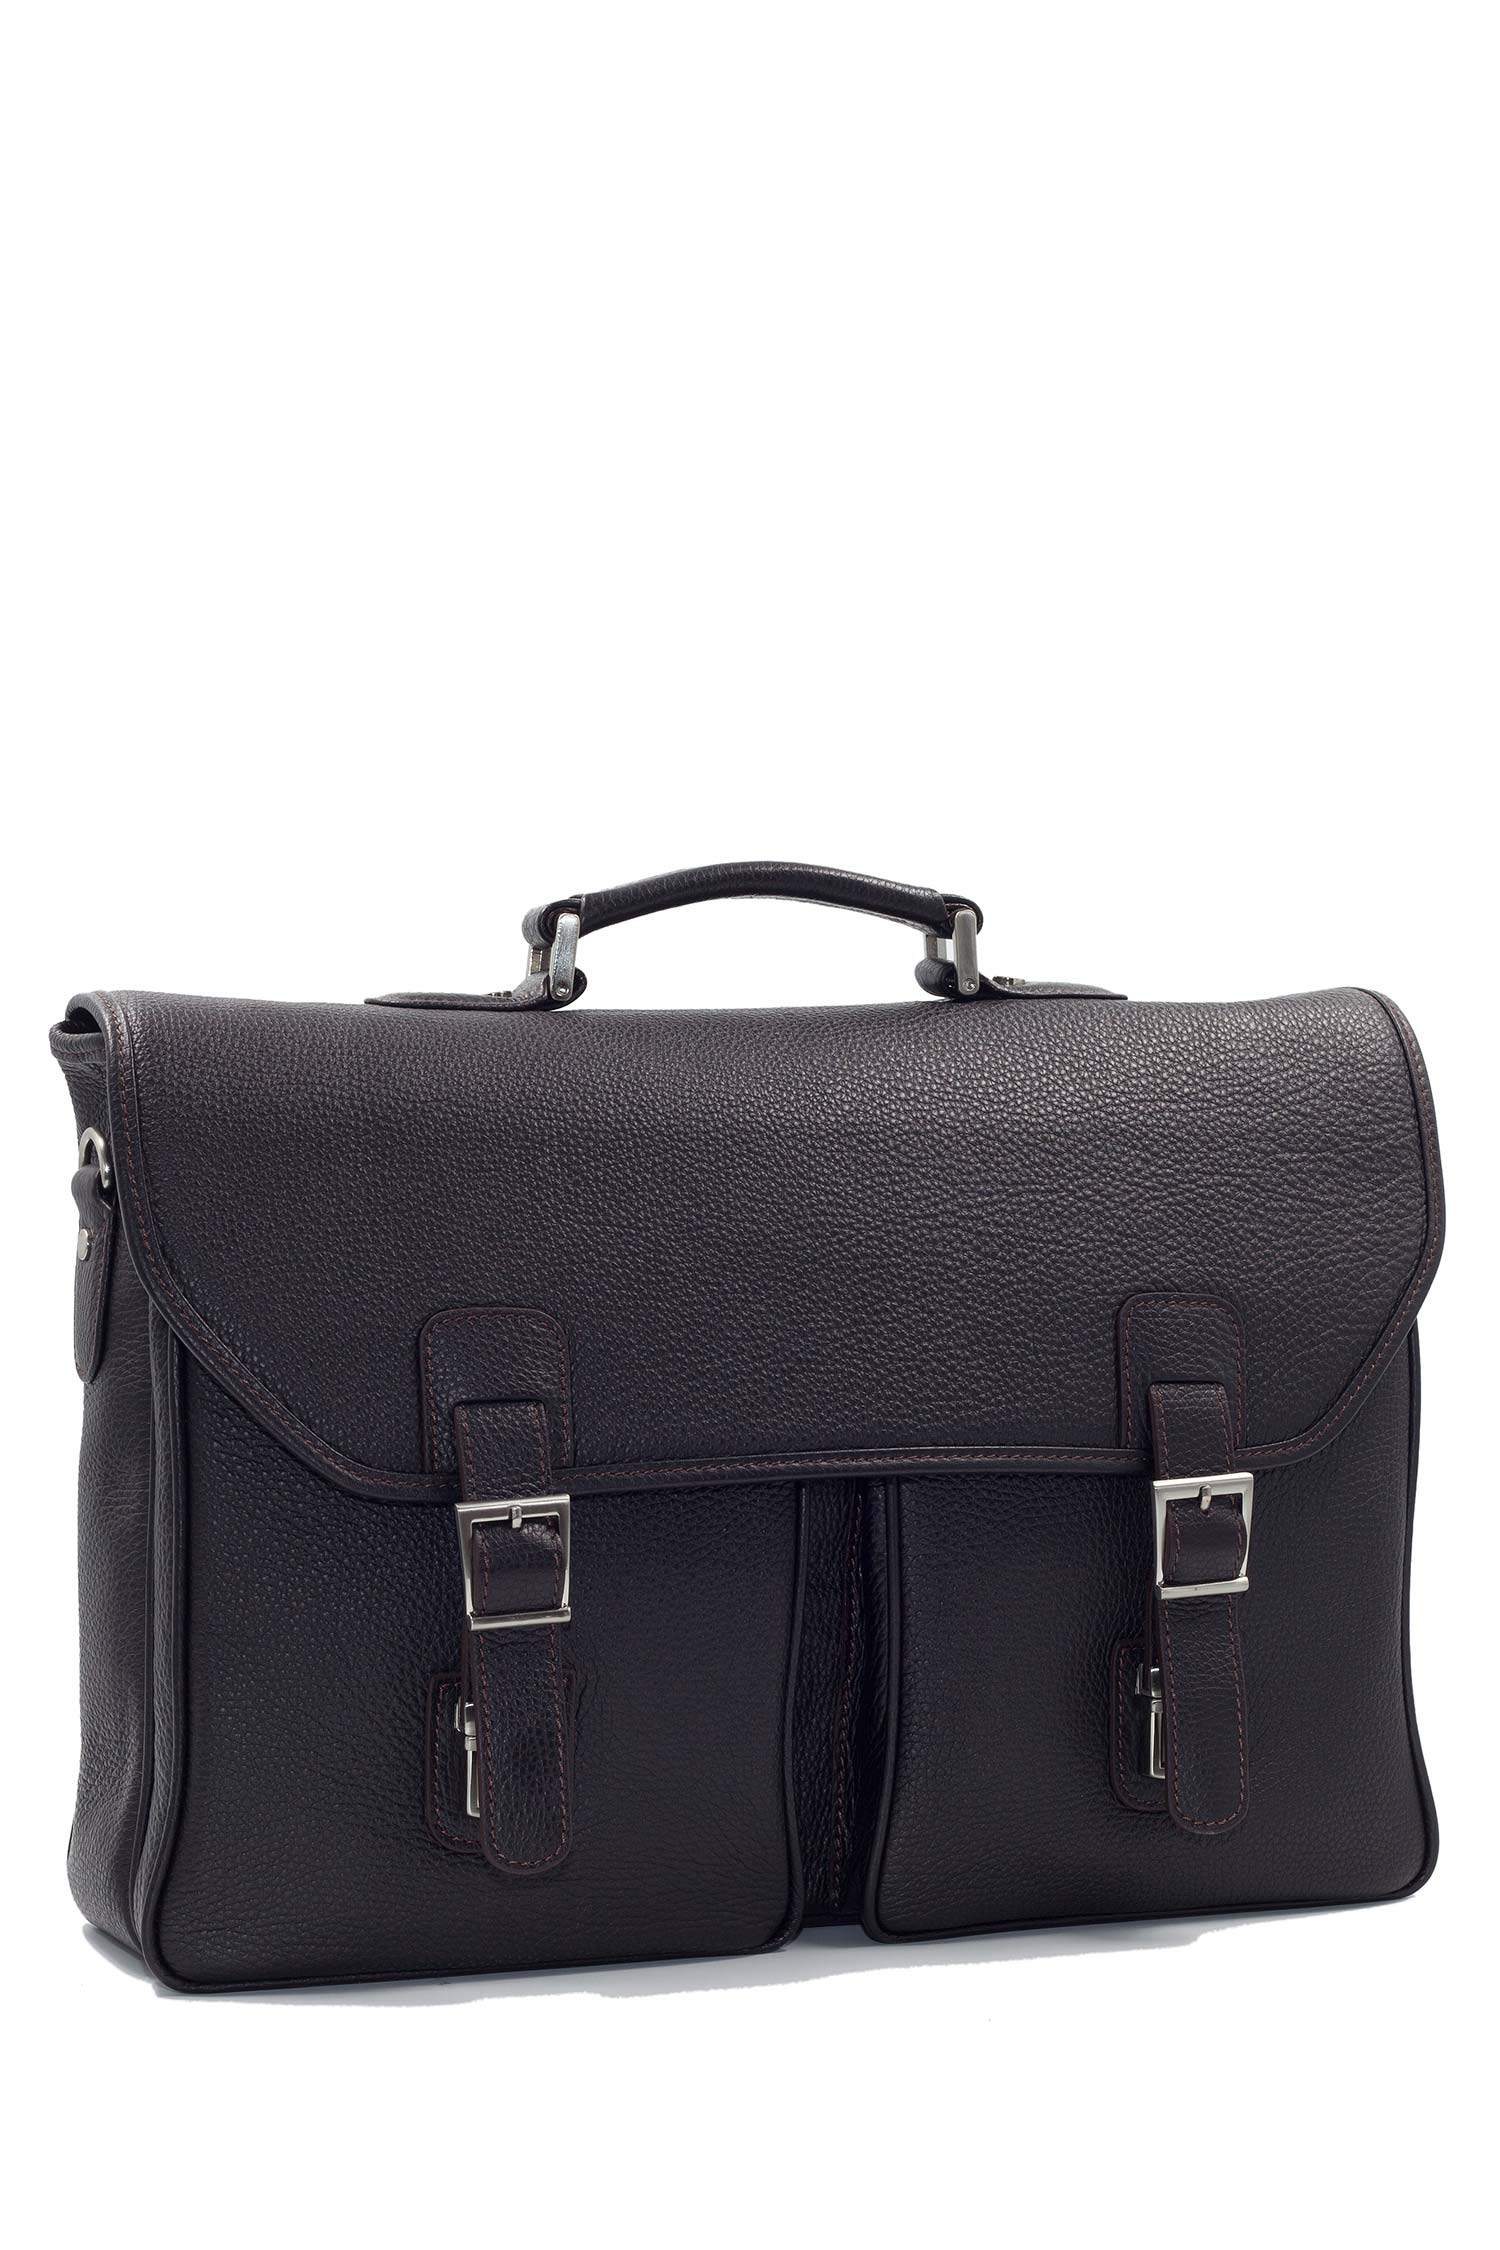 2017 High Quality New Design Unique Business Men Briefcase